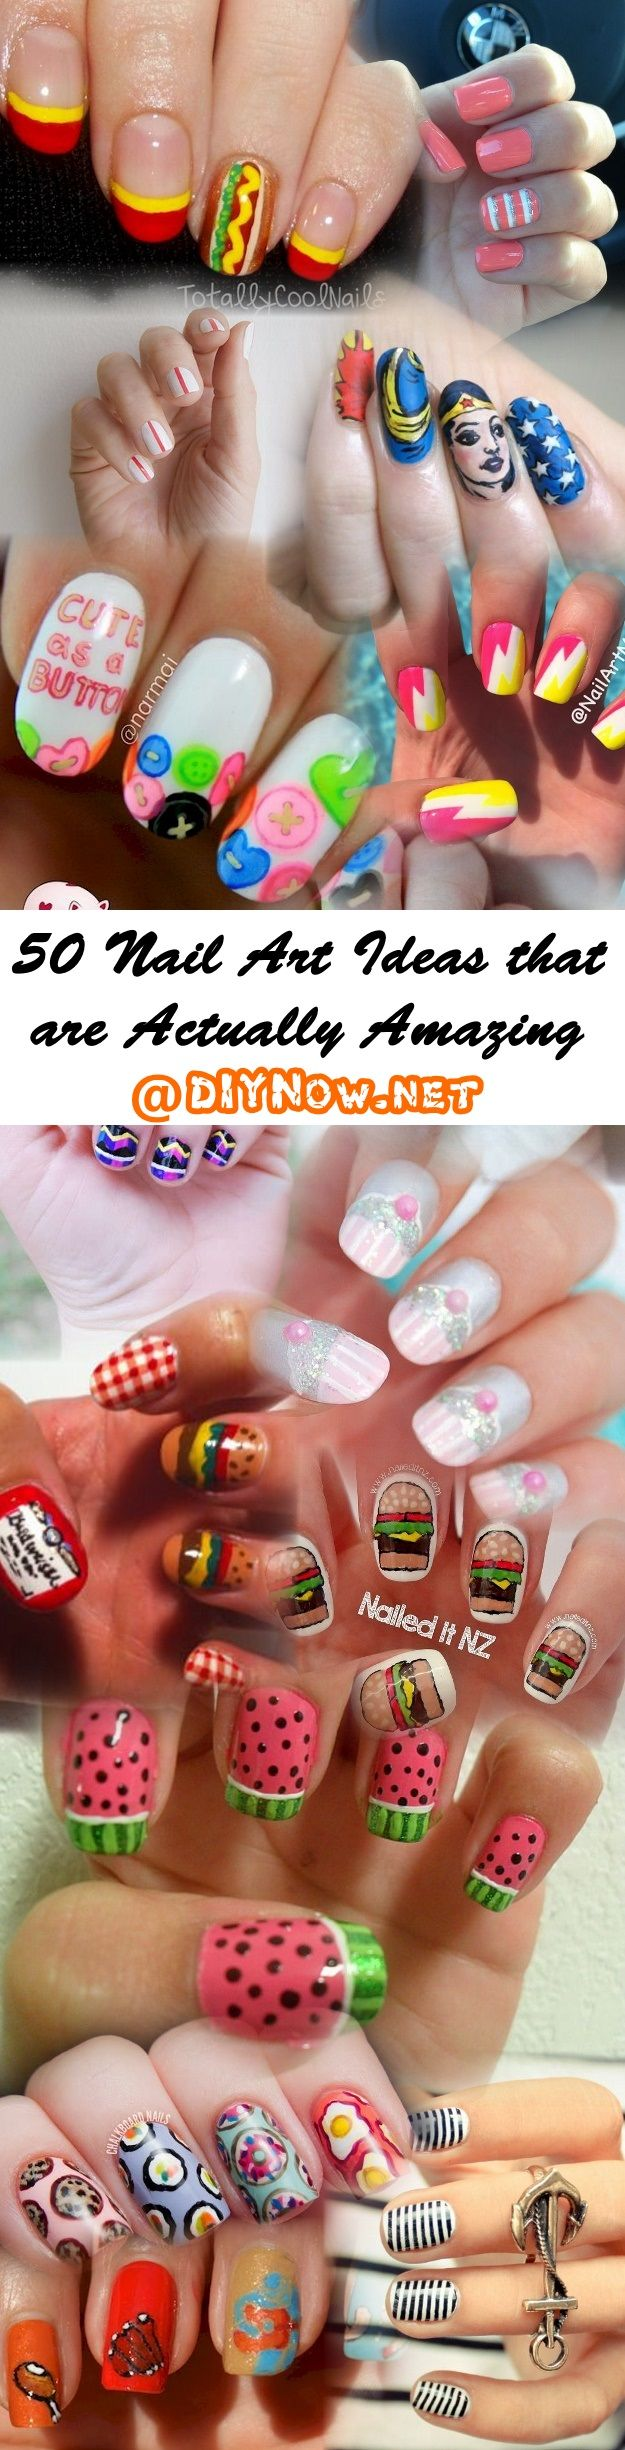 50 Nail Art Ideas that are Actually Amazing